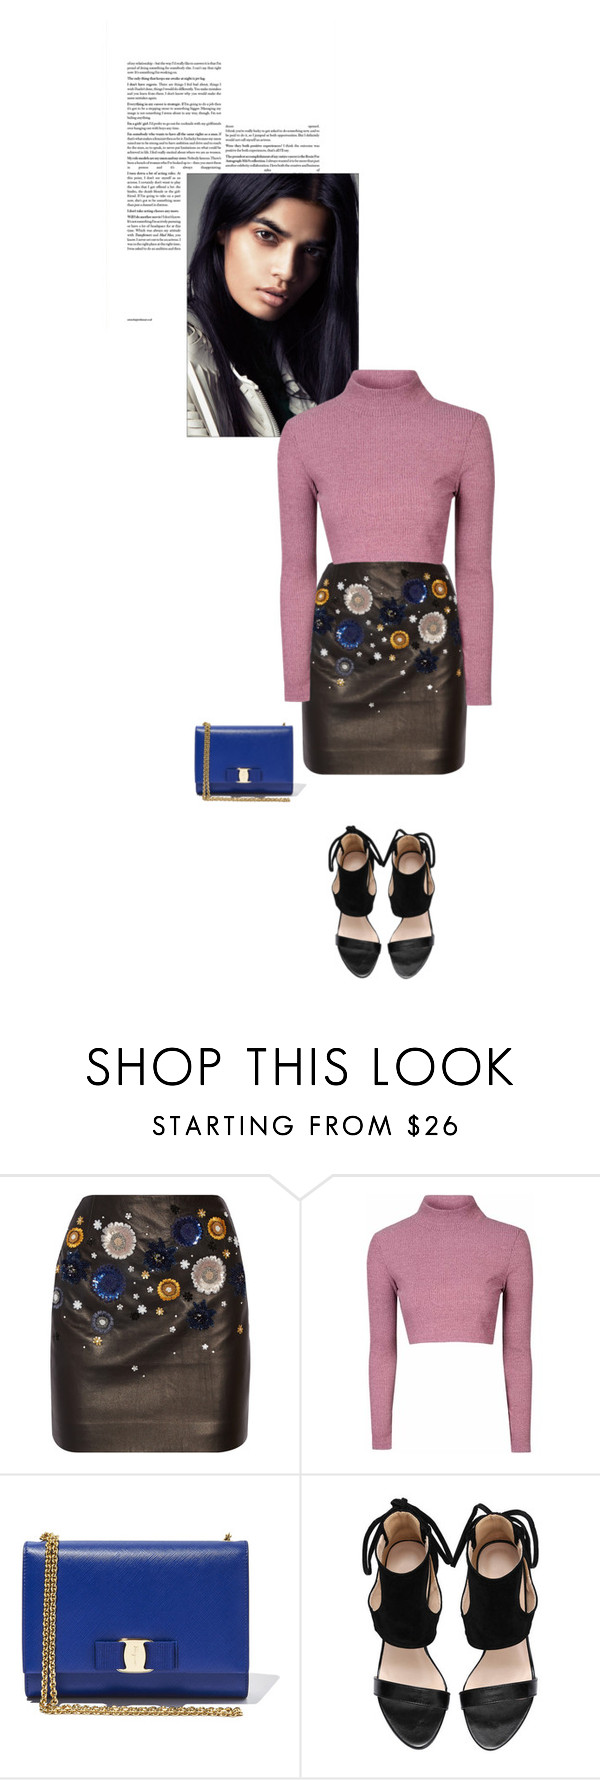 """""""Rose"""" by beautifullylovely ❤ liked on Polyvore featuring Topshop Unique, Glamorous, Salvatore Ferragamo, women's clothing, women's fashion, women, female, woman, misses and juniors"""